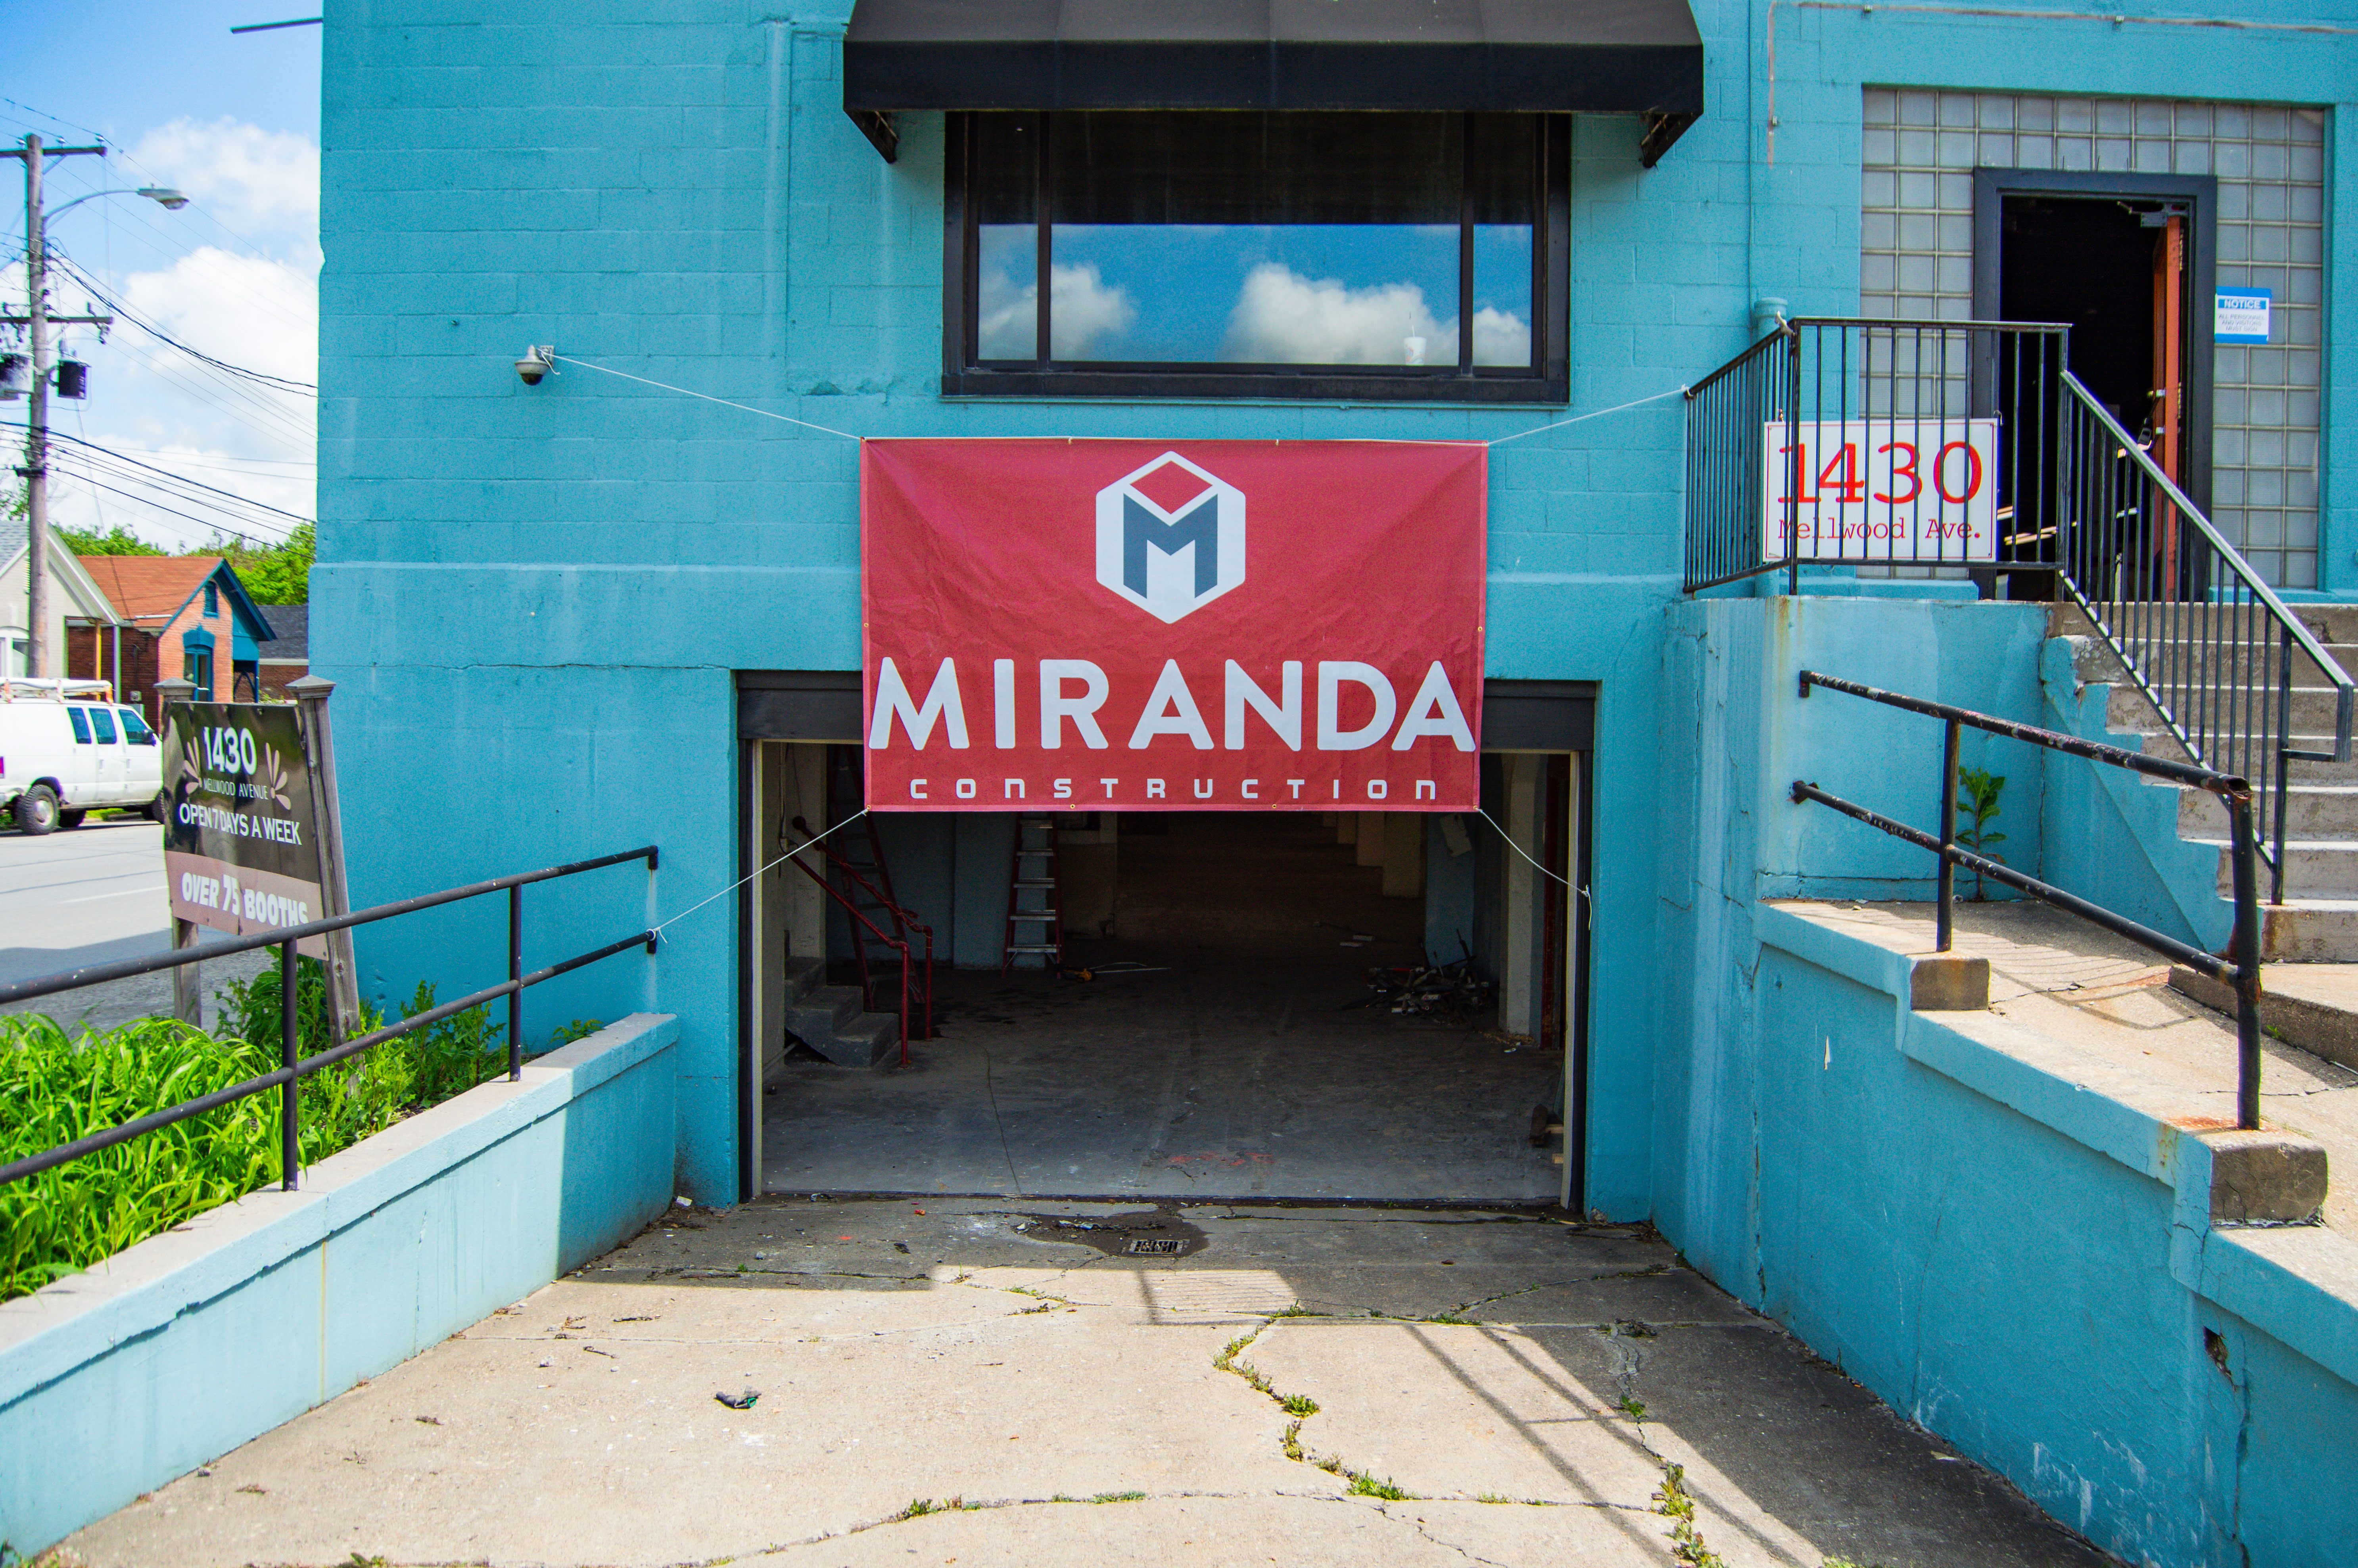 MIRANDA_CONSTRUCTION_LOUISVILLE_KENTUCKY